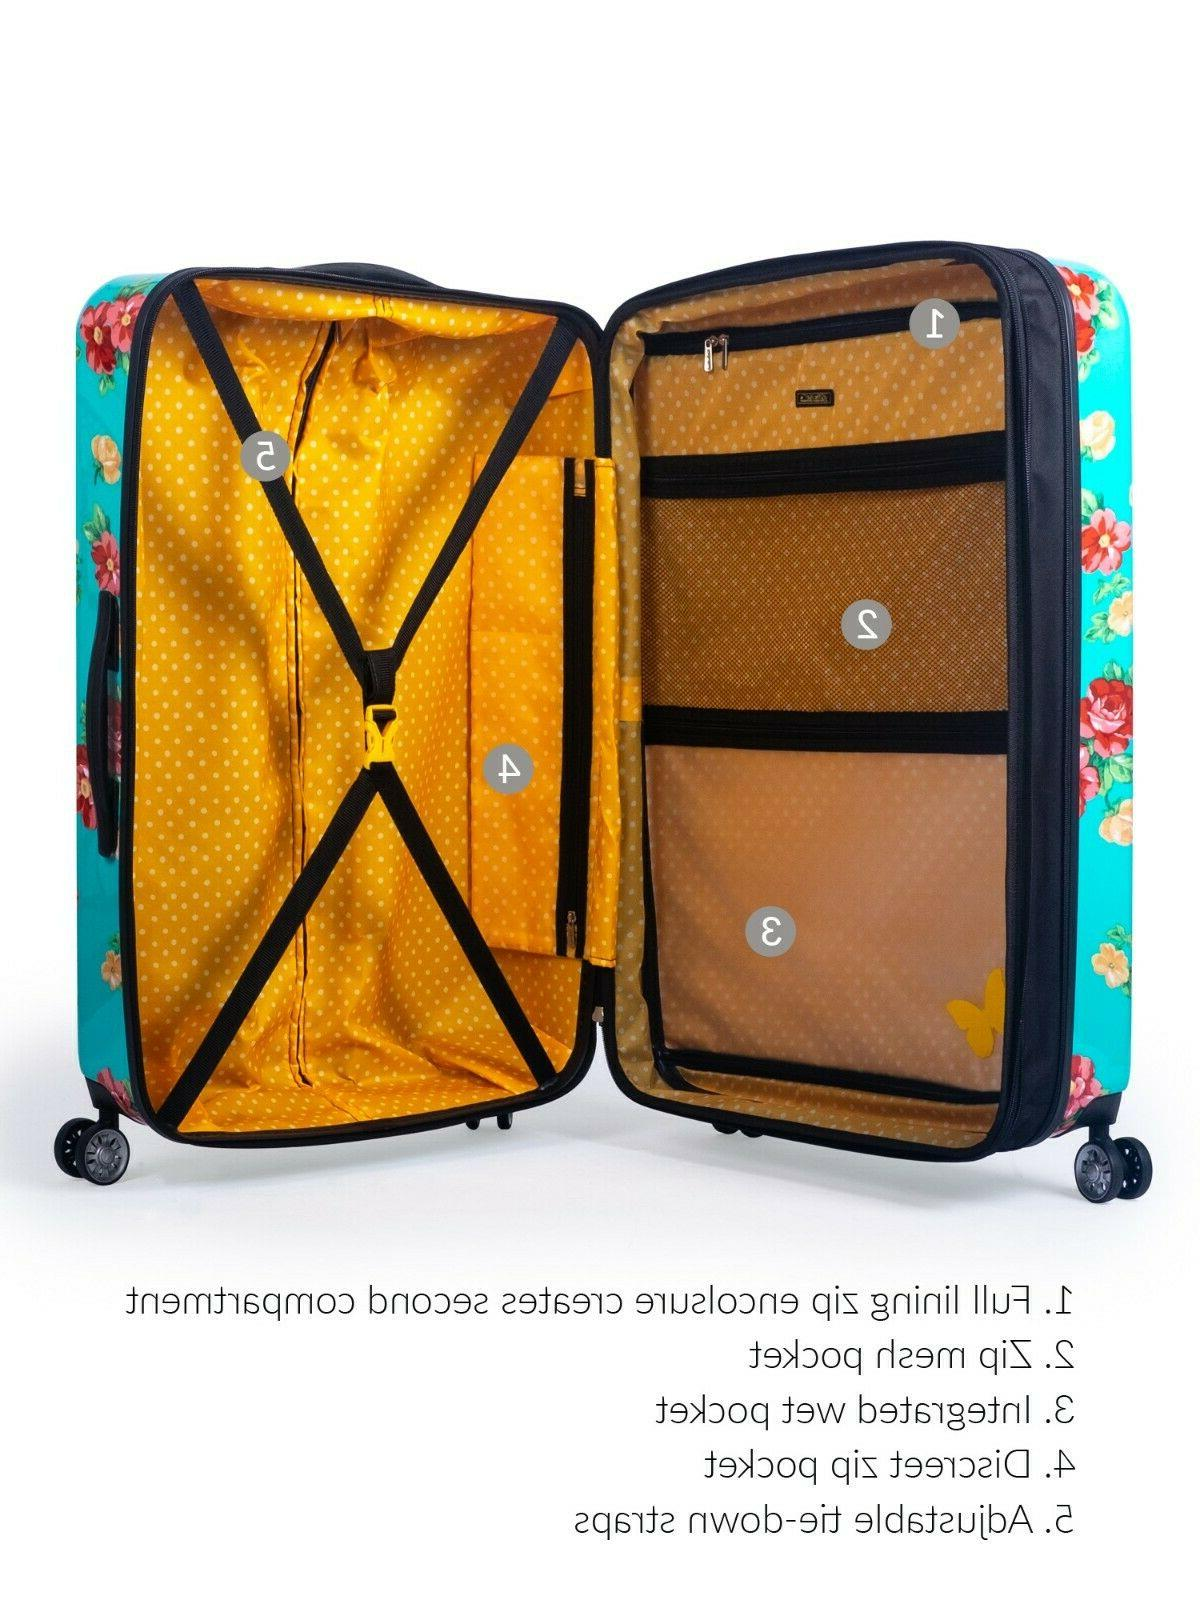 The Woman Hardside Luggage Piece Carry-On and Checked Luggage